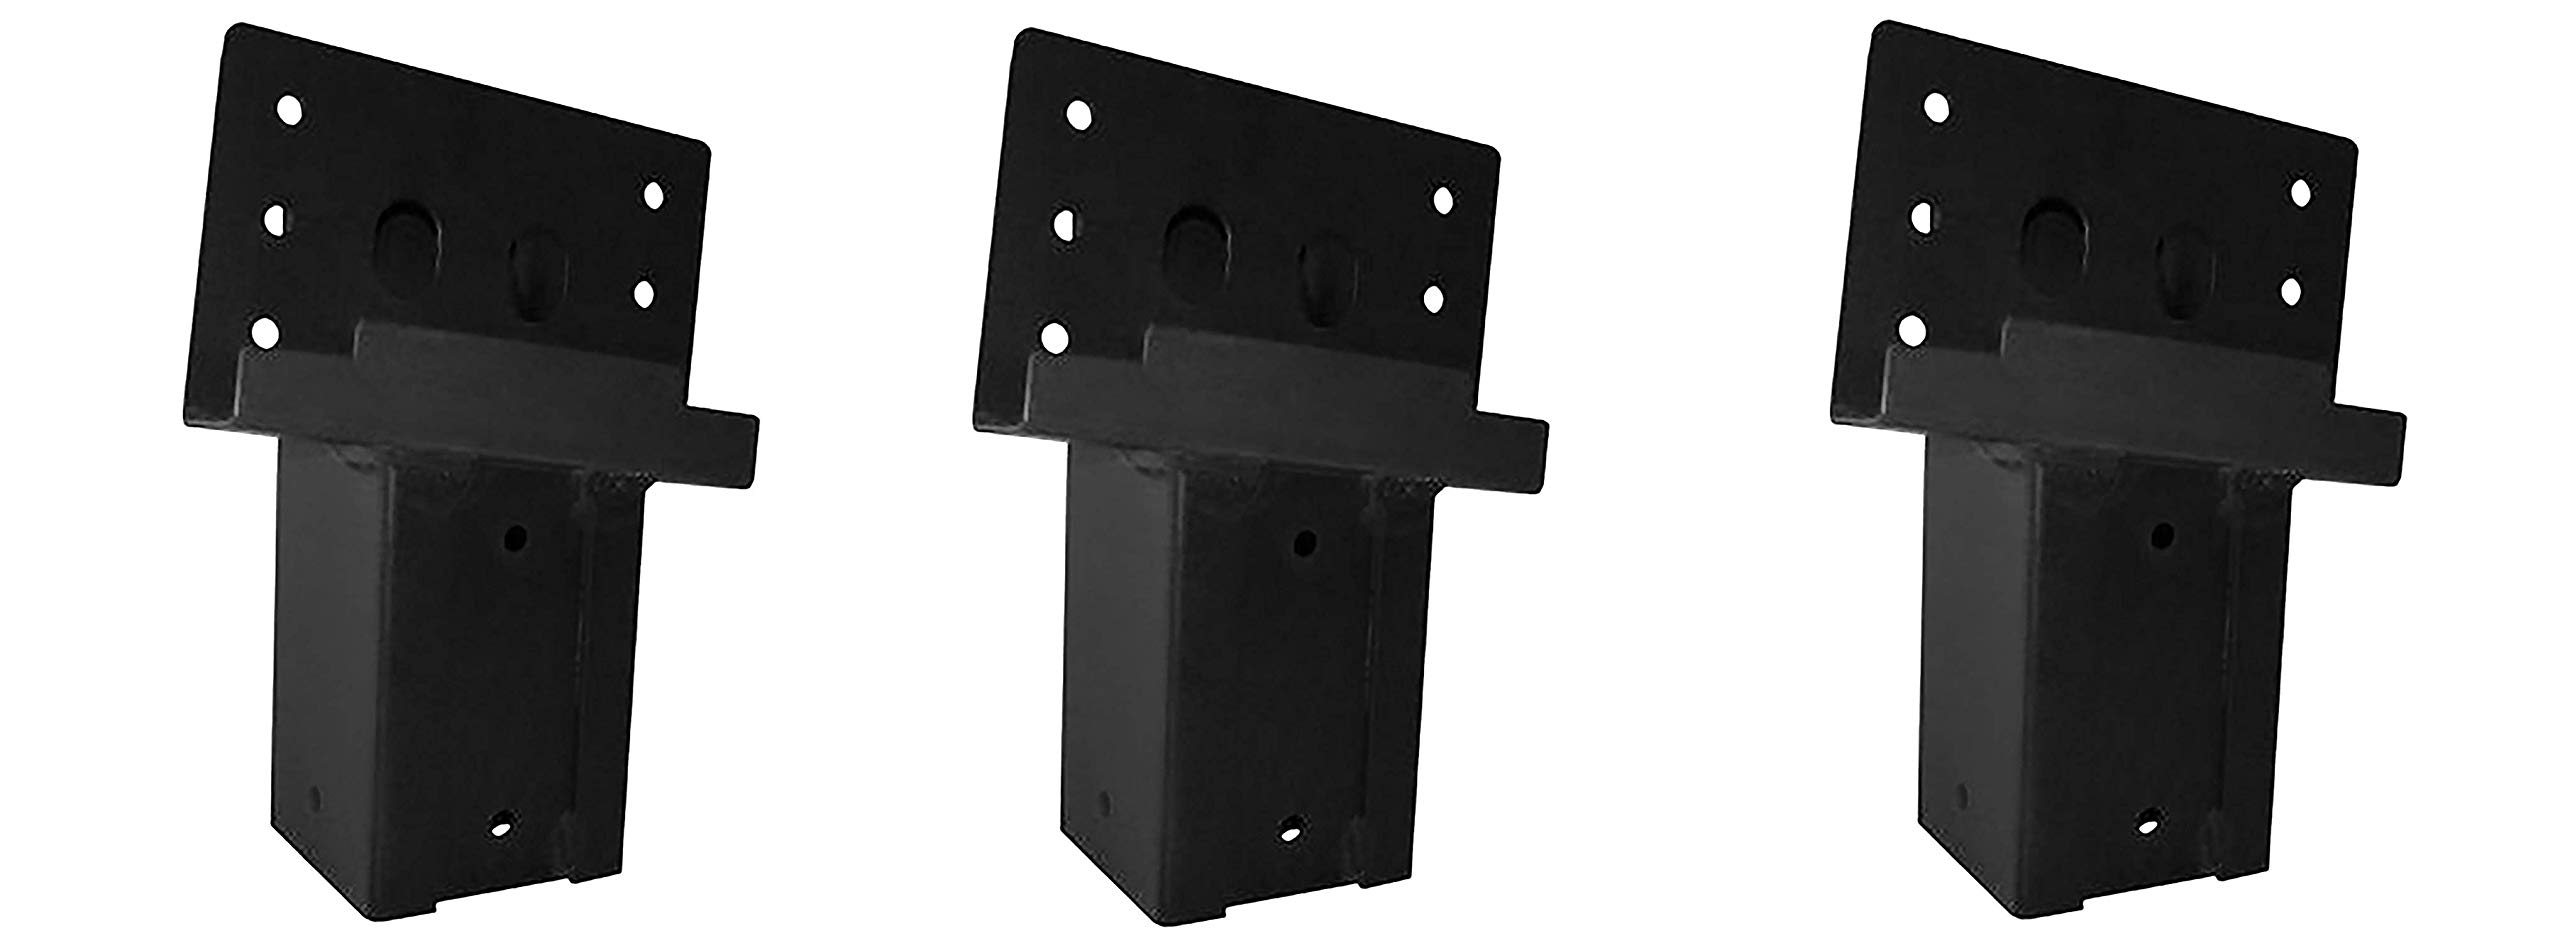 Elevators 4x4 Brackets for Deer Blinds, Playhouses, Swing Sets, Tree Houses. Made in The USA with Premium Construction Grade Steel. (Set of 4) (Pack of 3)